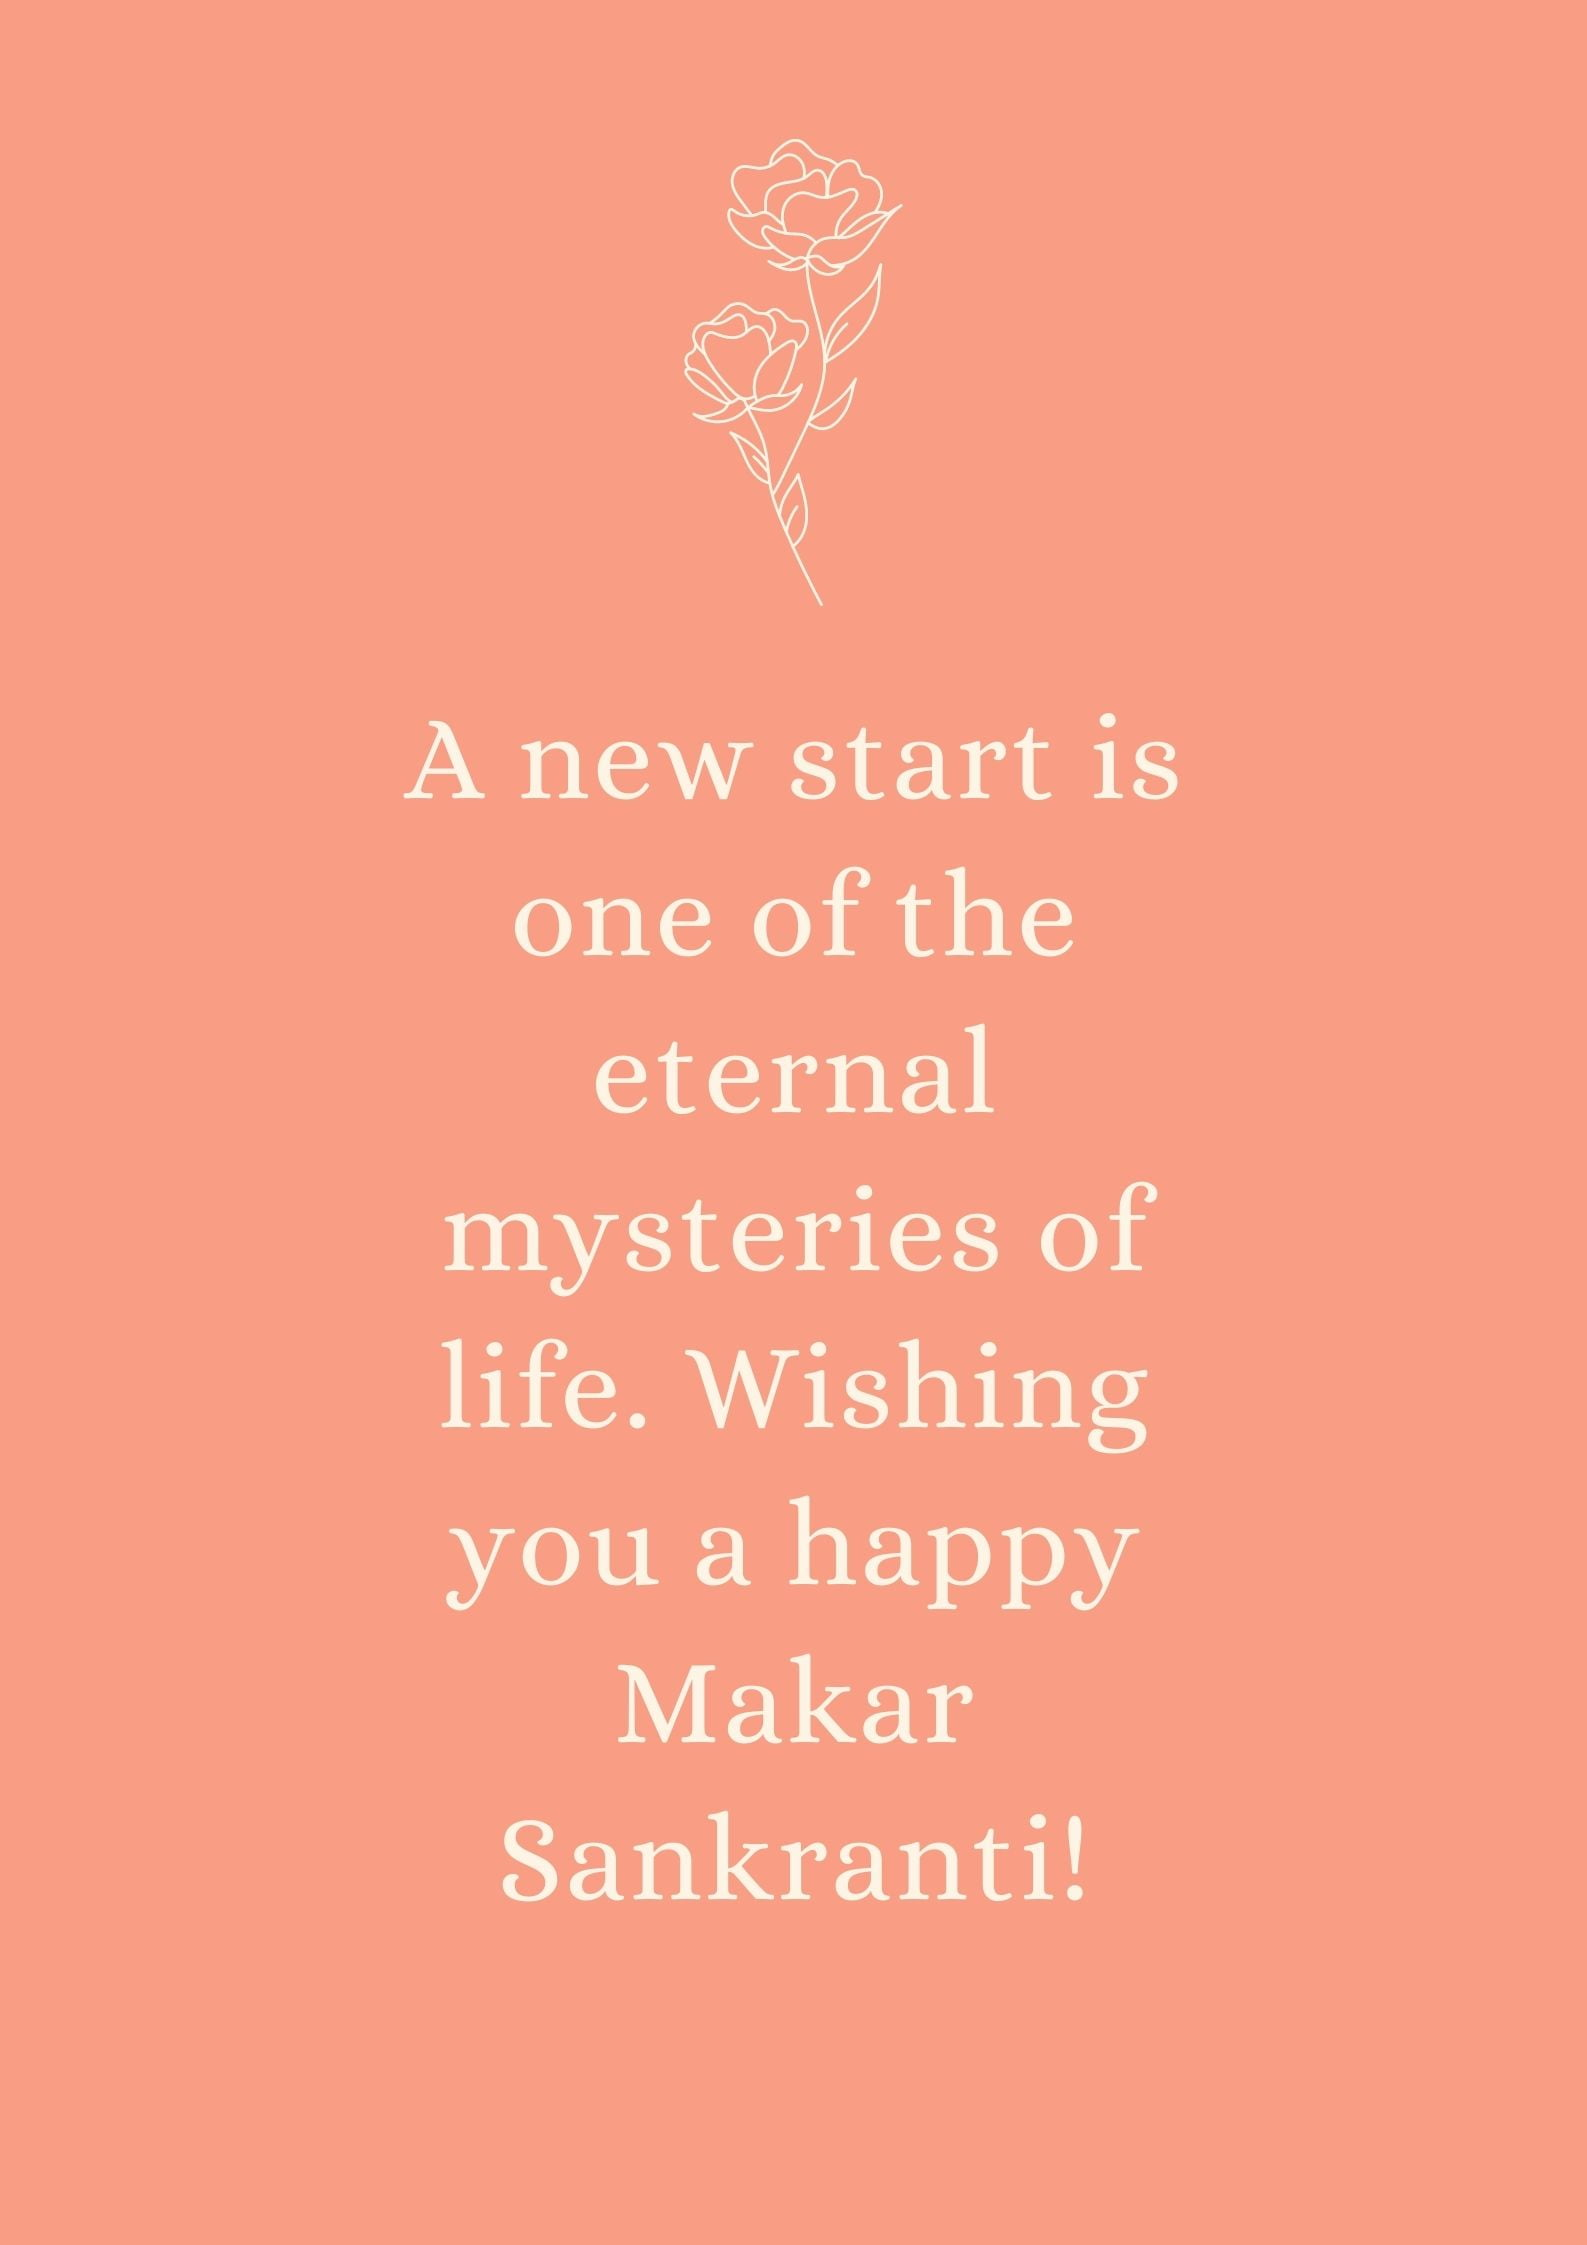 Makar Sankranti Quotes  - Makar Sankranti Quotes - MAKAR SANKRANTI Instagram Captions and Quotes 2021